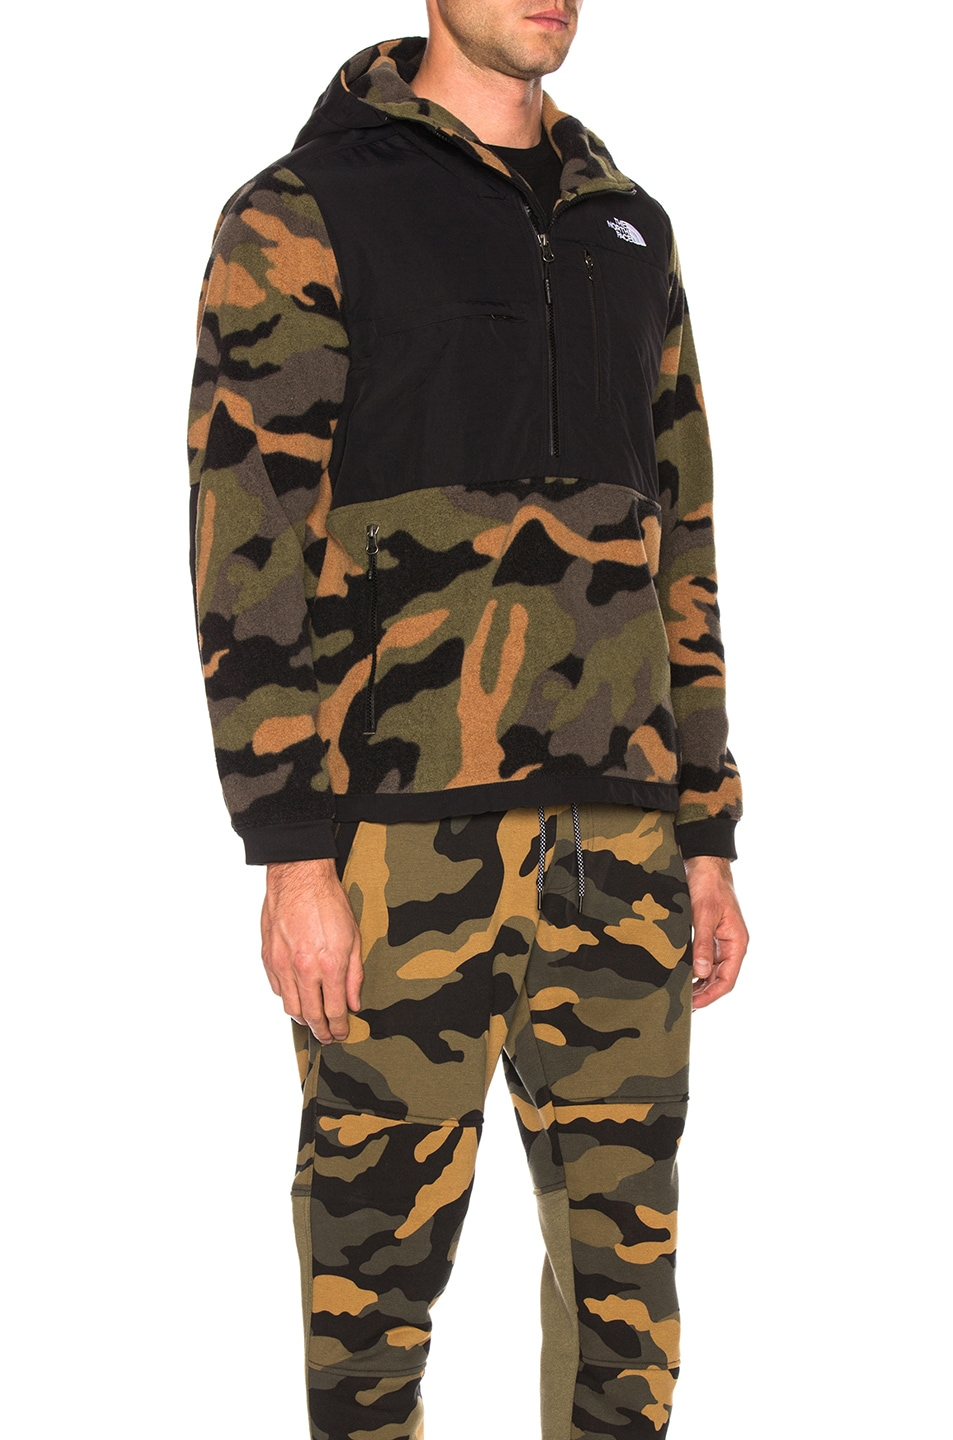 Image 3 of The North Face Denali Anorak in Burnt Olive Green Woods Camo Print